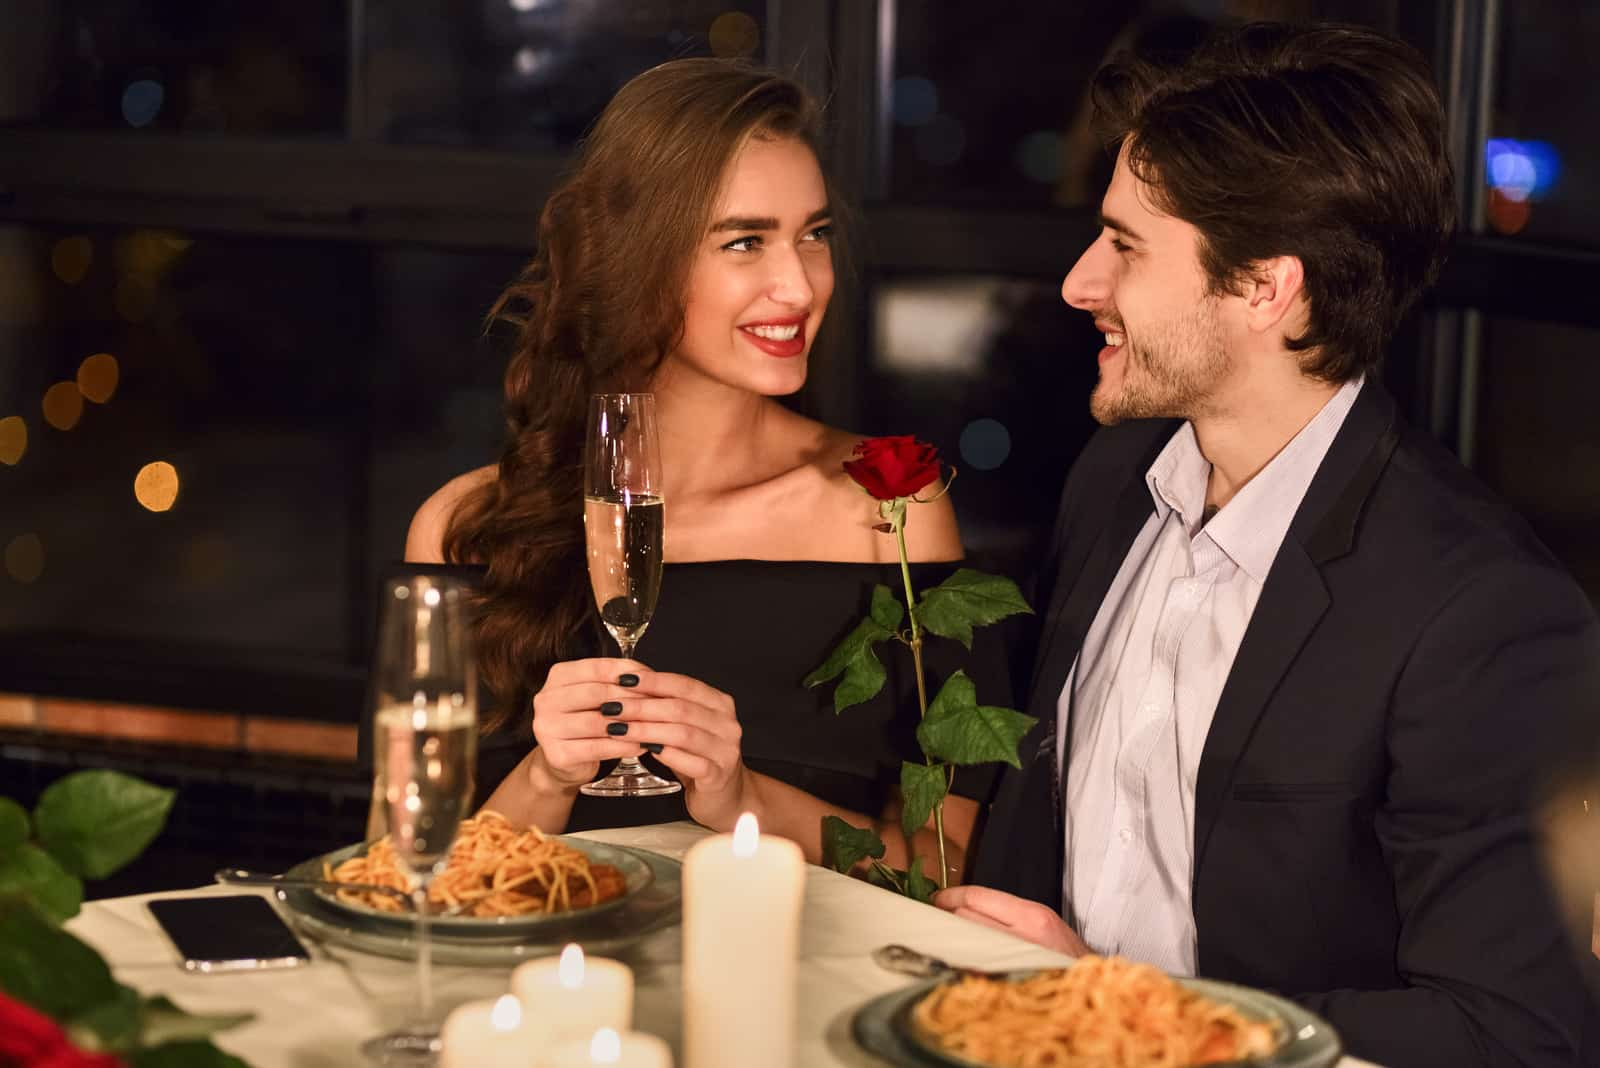 at dinner with wine a man gives a rose to an overjoyed woman